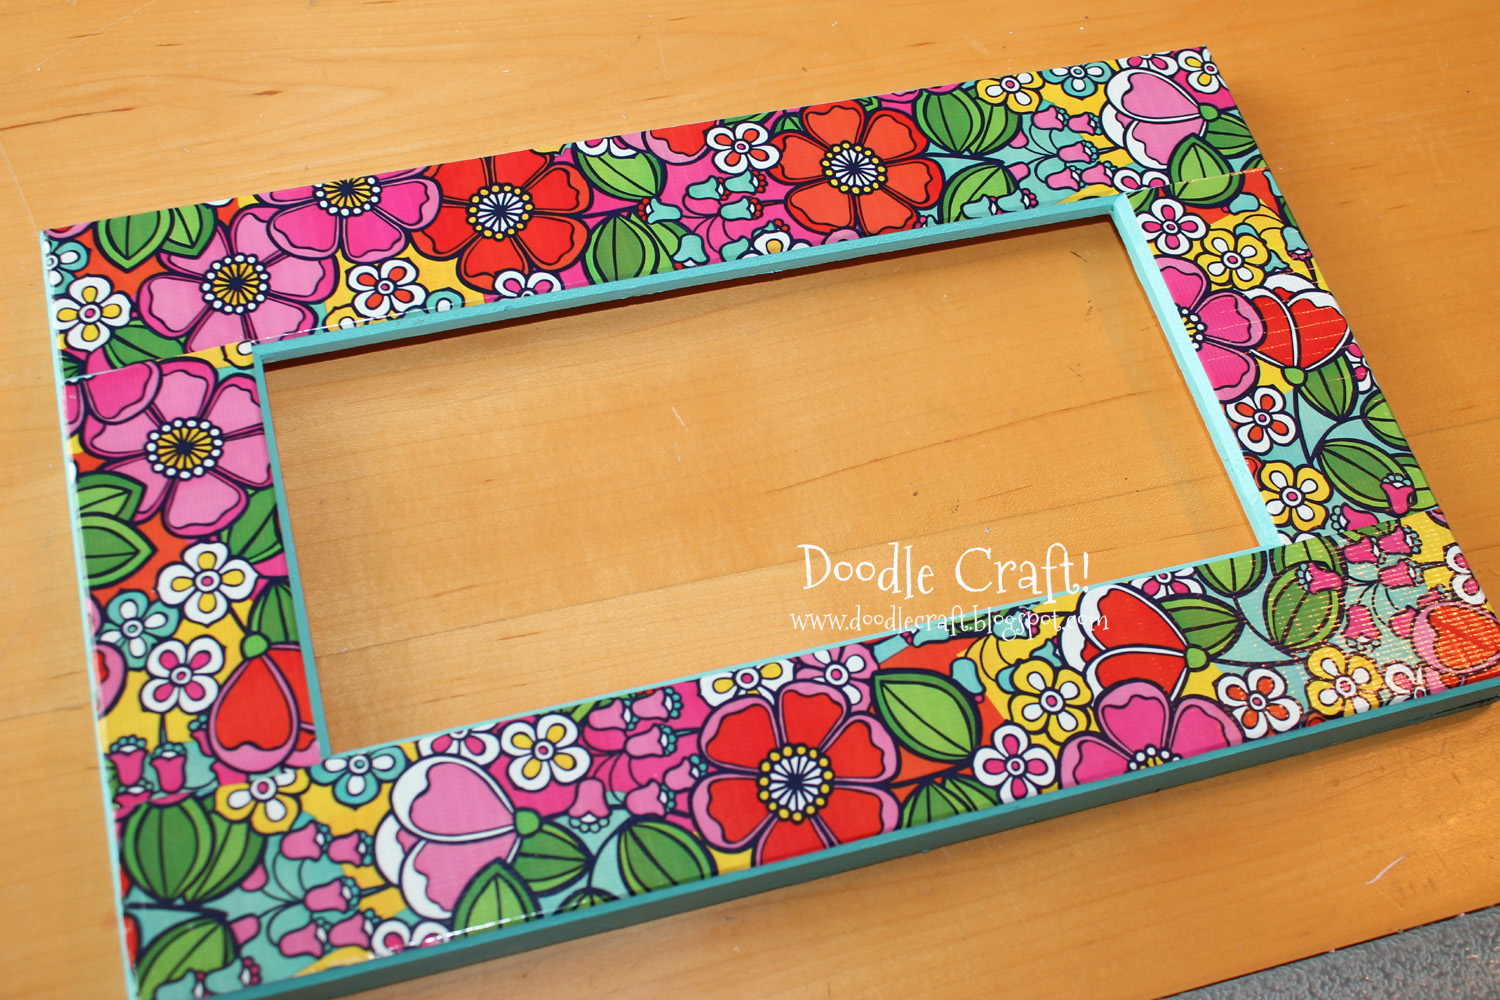 Doodlecraft: Duct Tape Picture Frame!